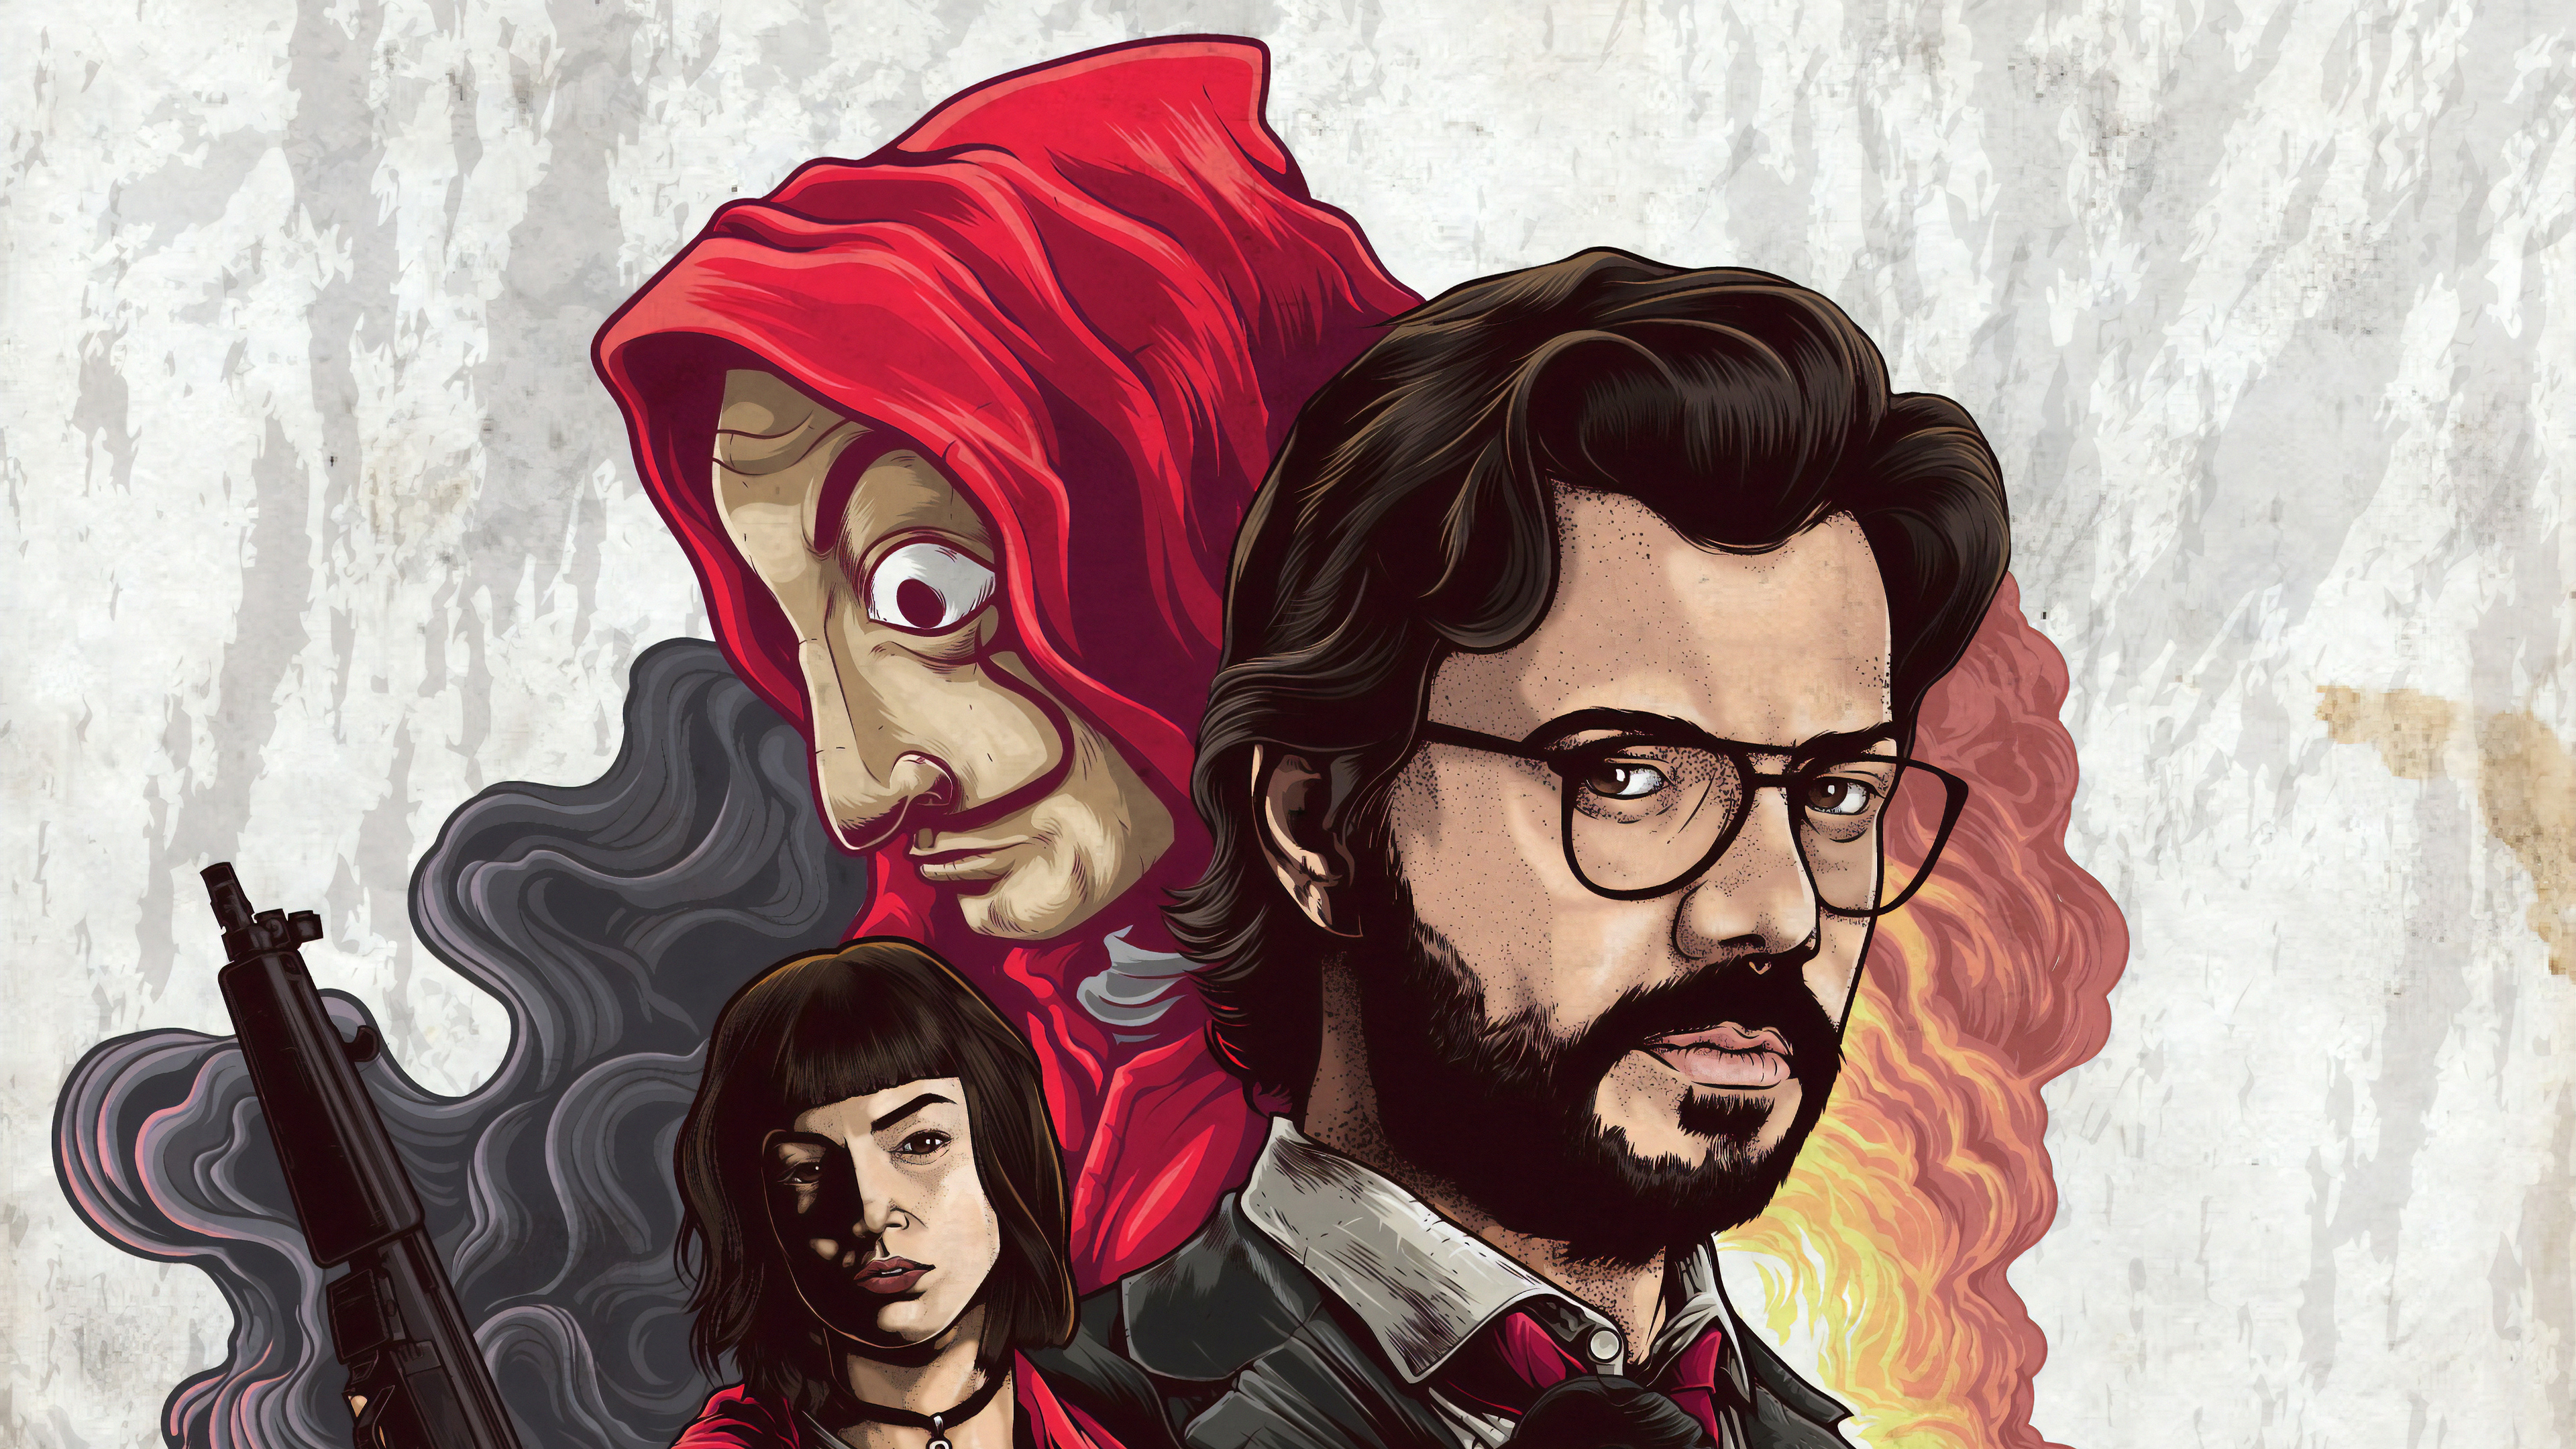 Wallpaper 4k Money Heist 2019 La Casa De Papel 2019 4k Wallpaper